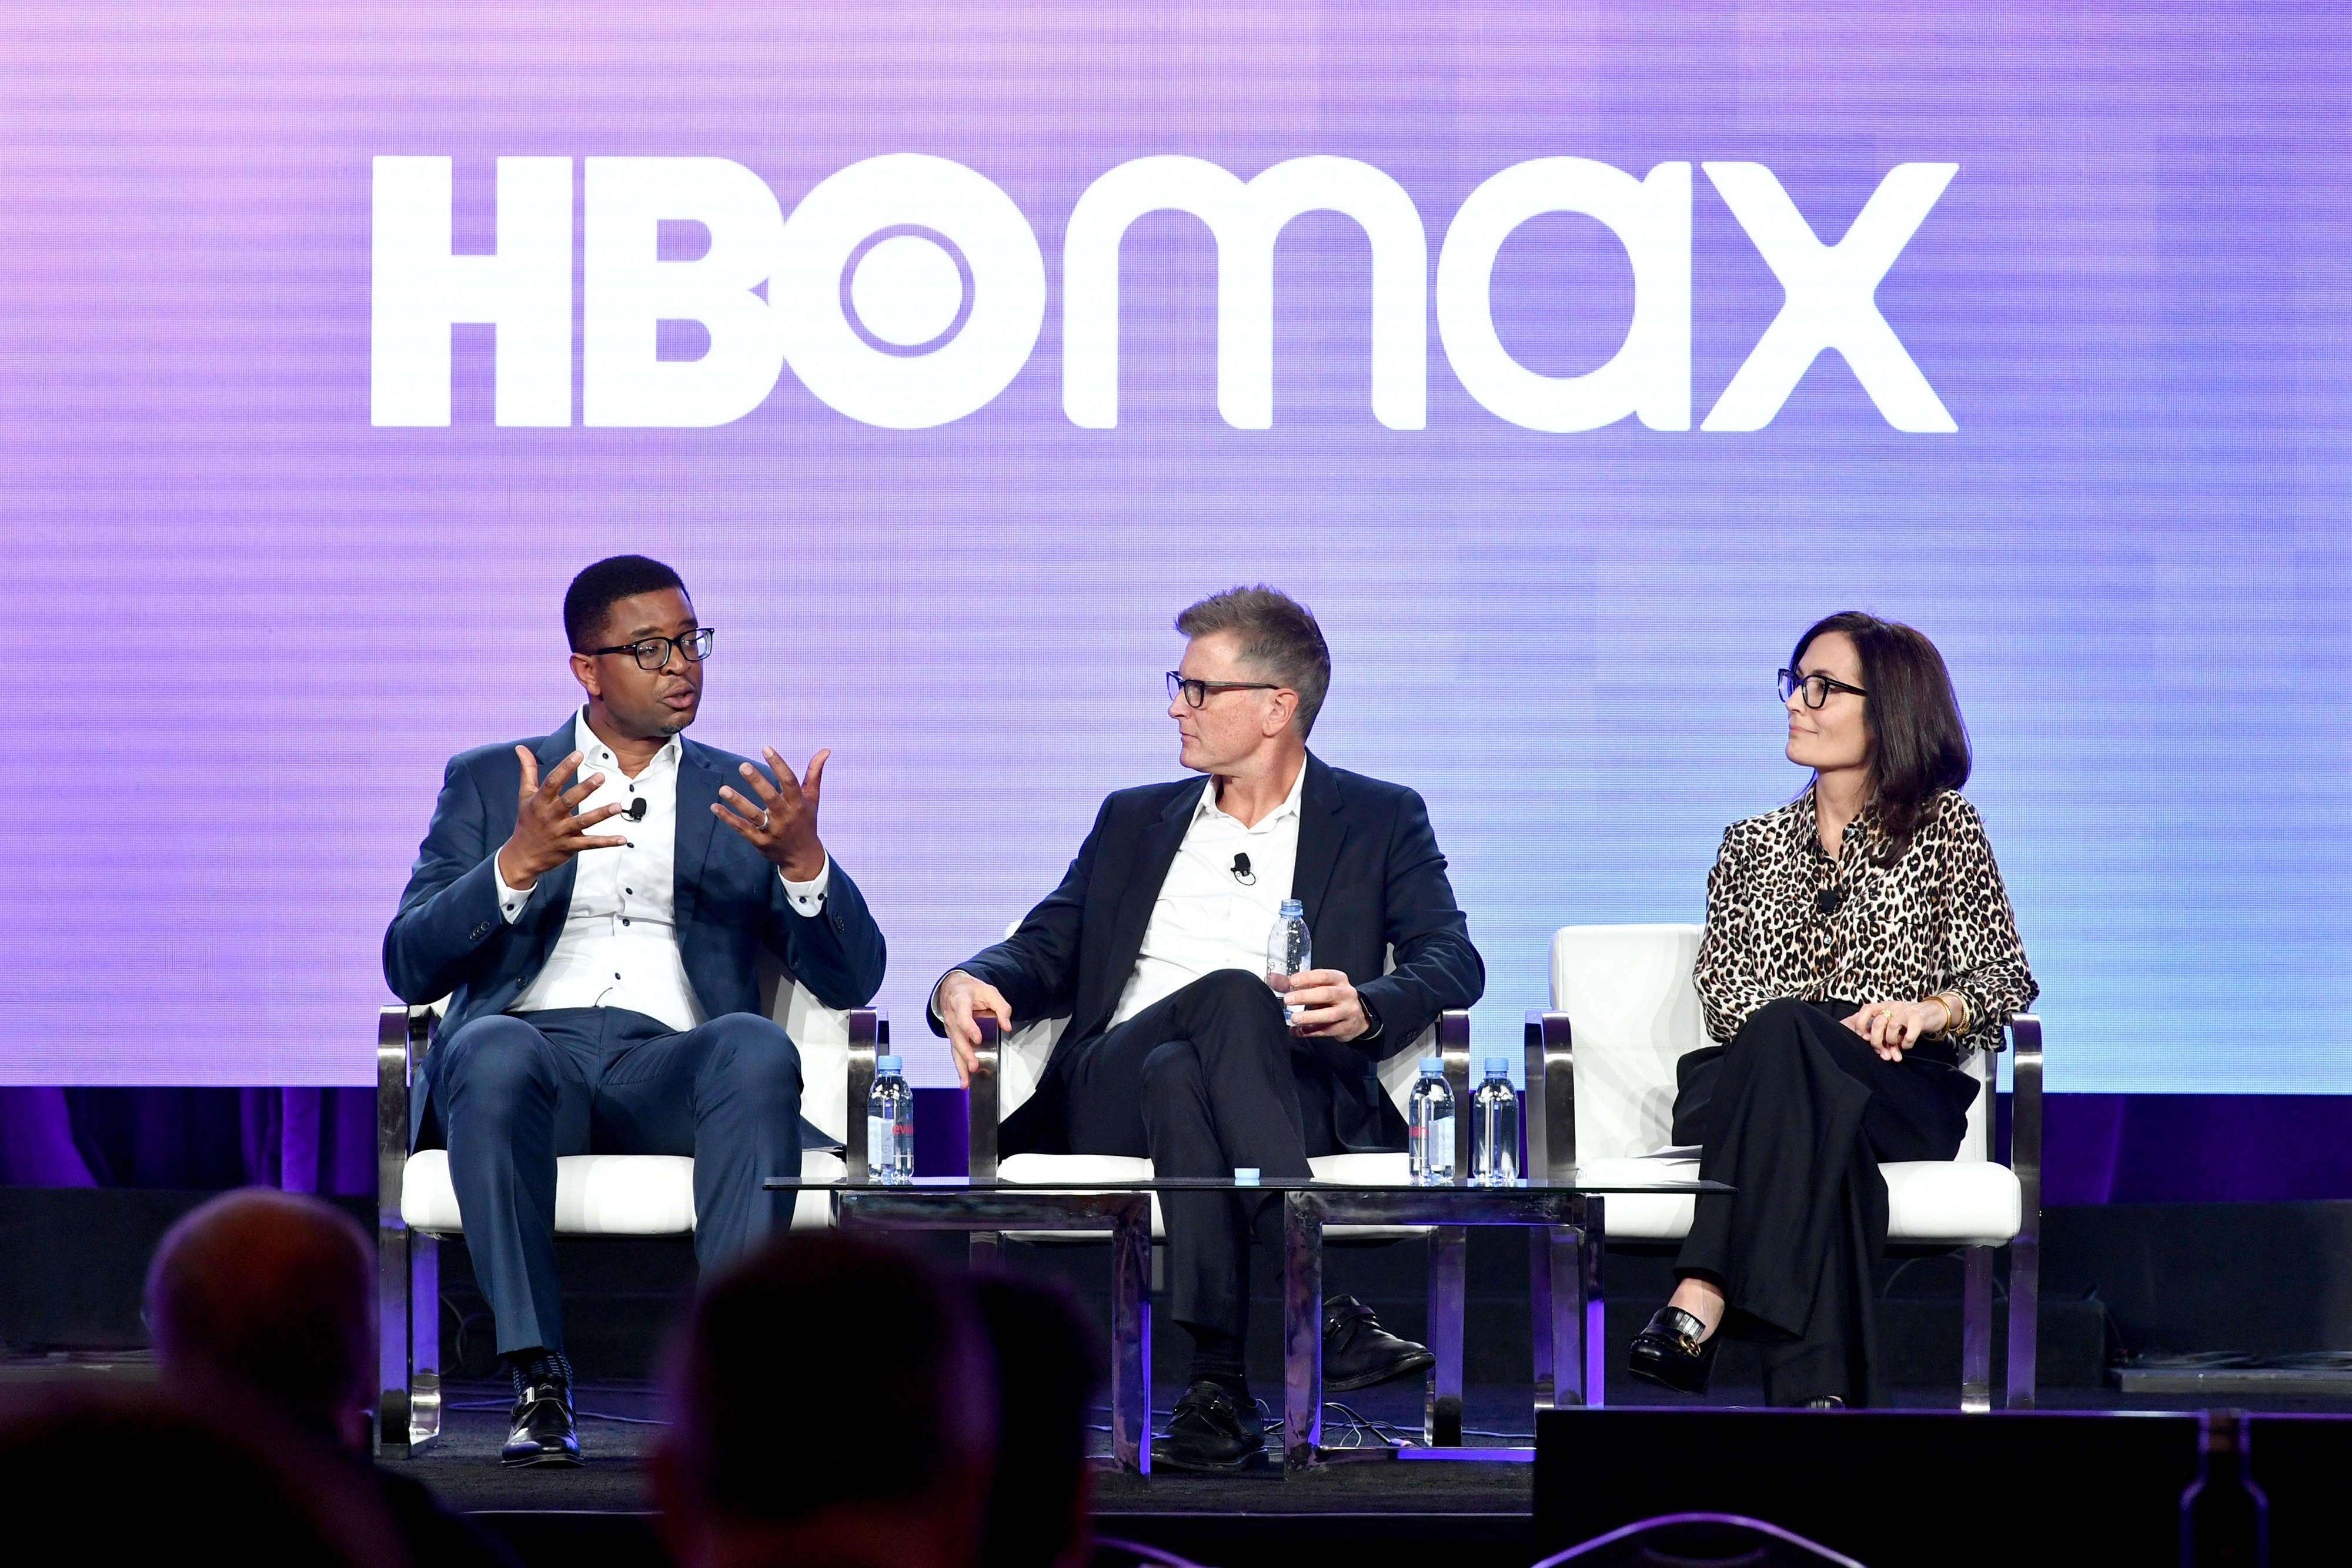 HBO Max has bumpy start, 'isn't a game changer for AT&T,' analyst says